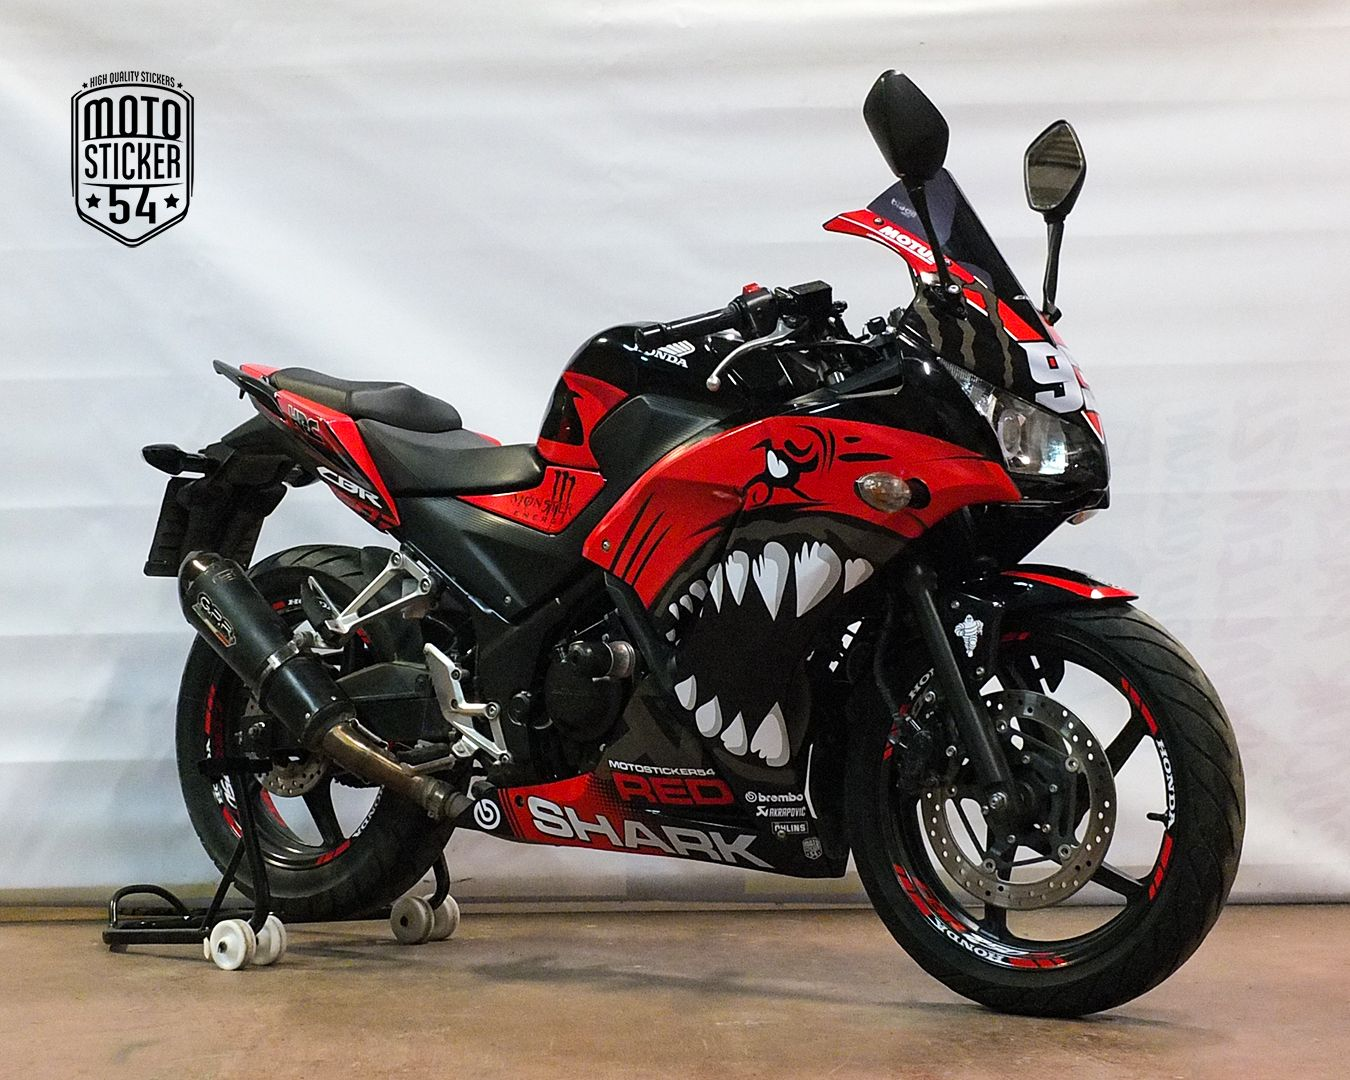 Honda cbr250r special design red shark sticker kit motosticker54 motorcycle honda cbr sticker wrap